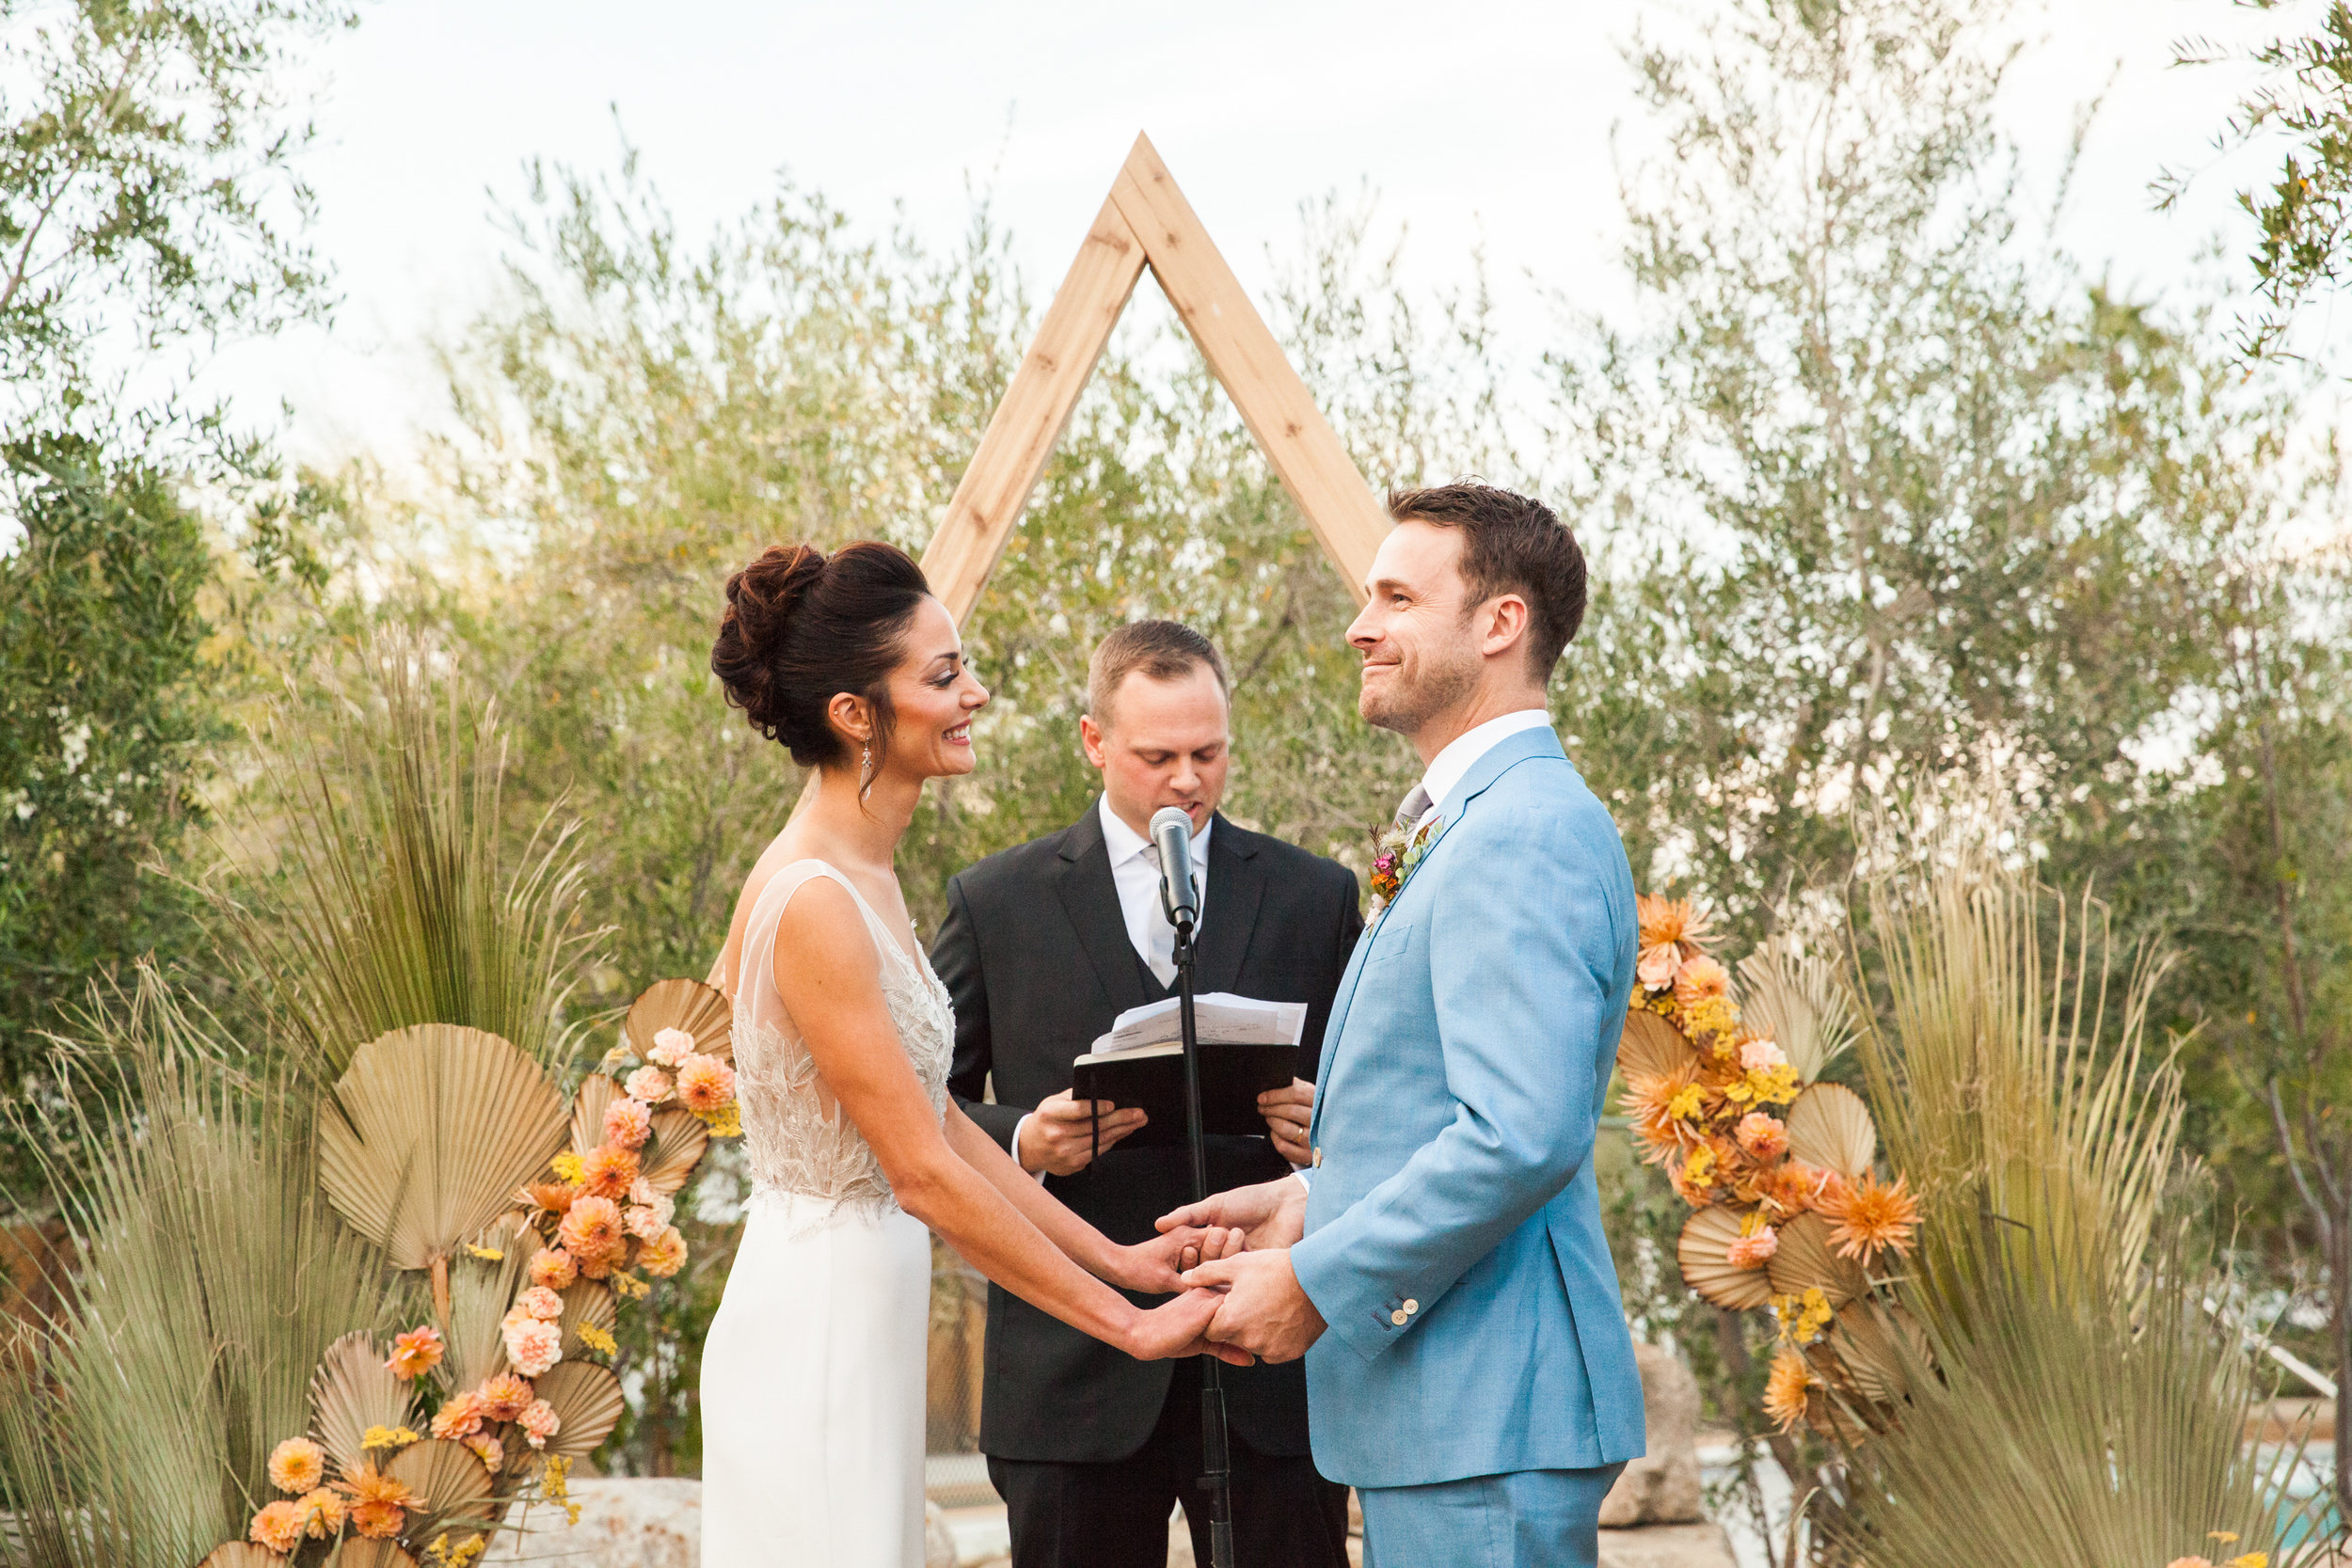 Unique colorful wedding arch at Ace Hotel and Swim